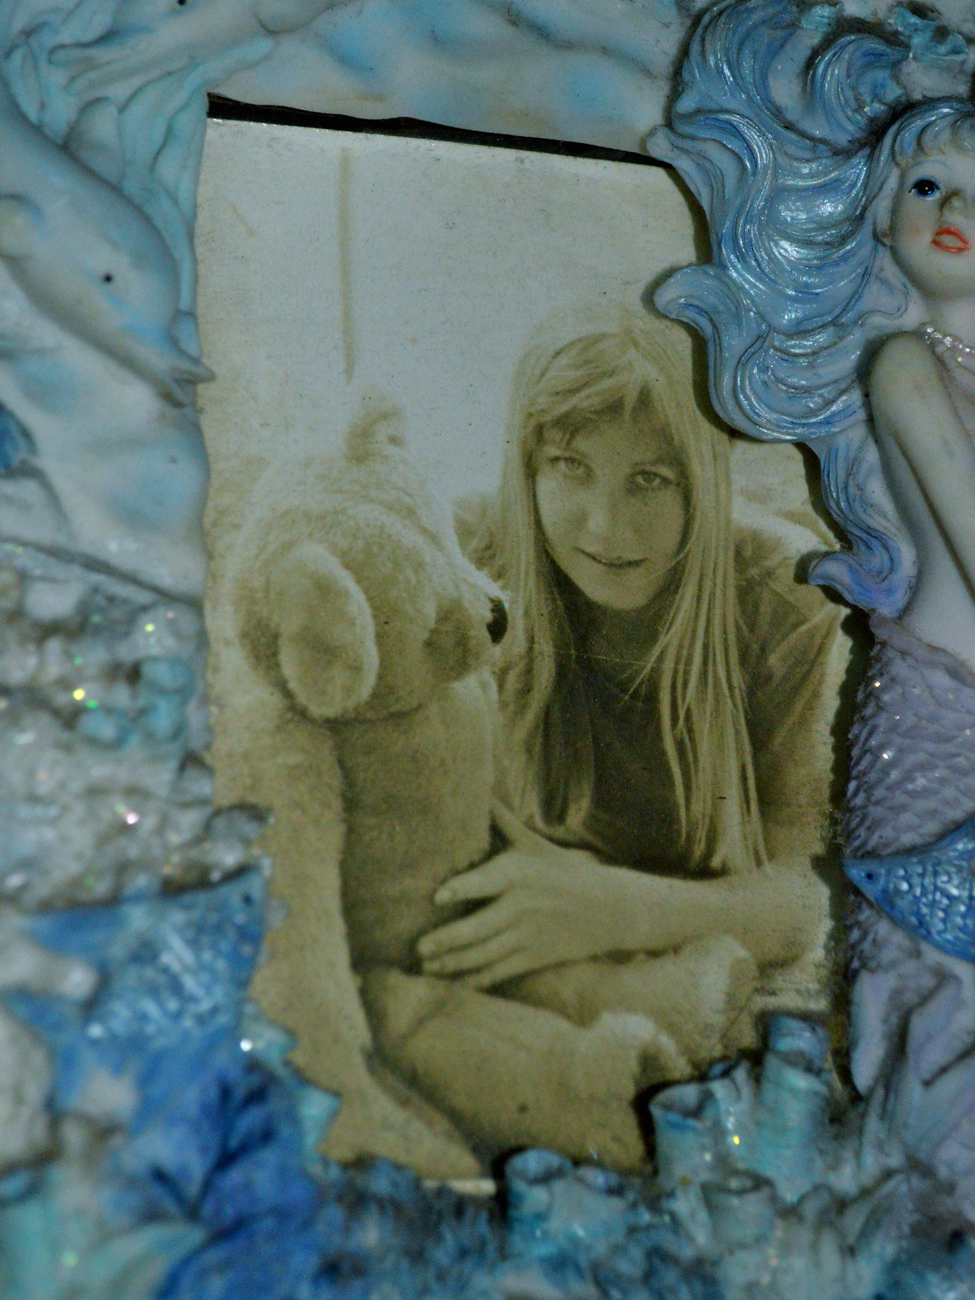 The mermaid, in her younger days,  with teddybear